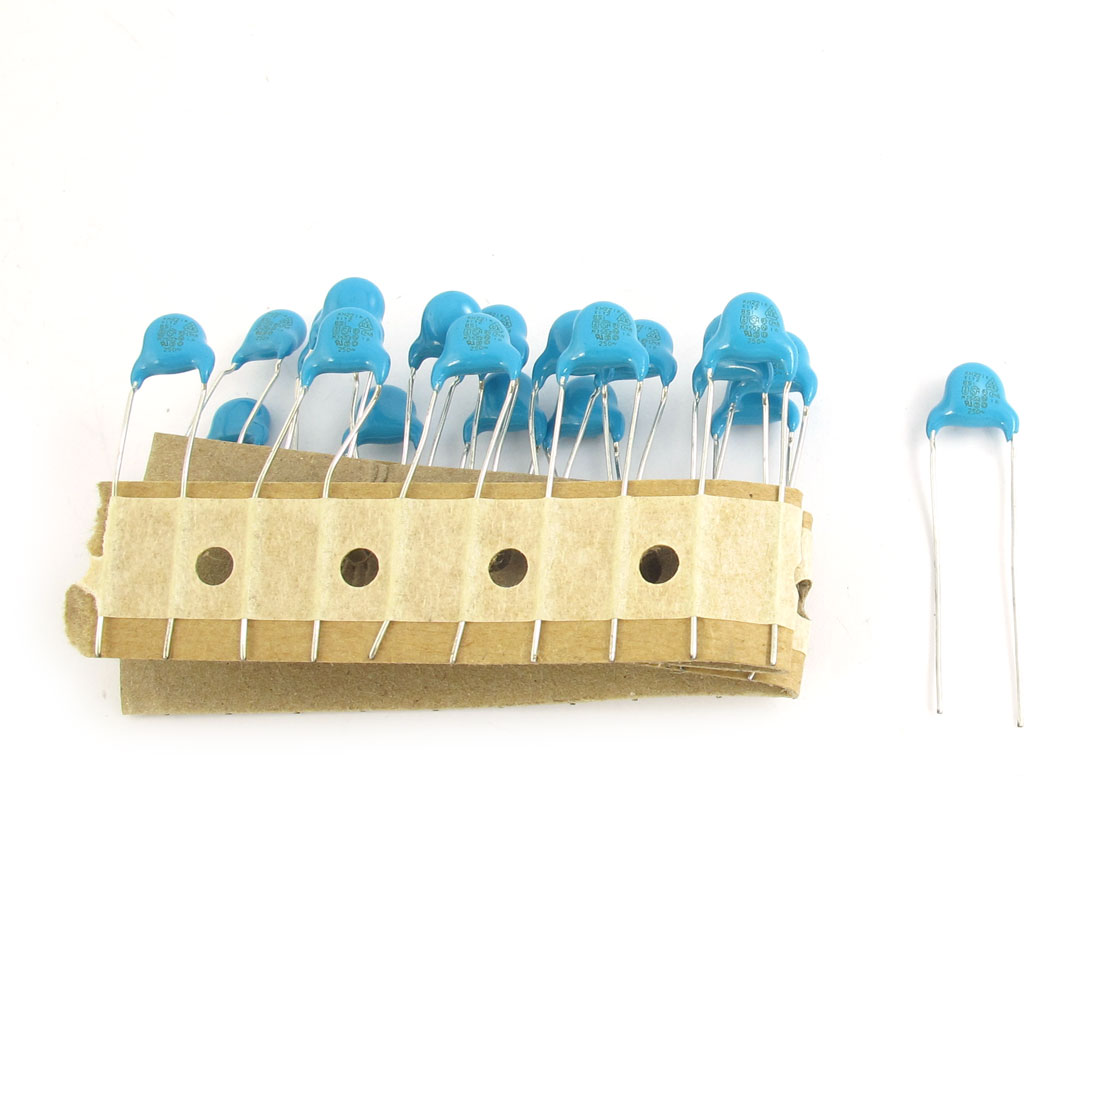 20 Pcs AC 250V 220pF Radial Lead Through Hole DIP High Voltage Ceramic Capacitor Blue